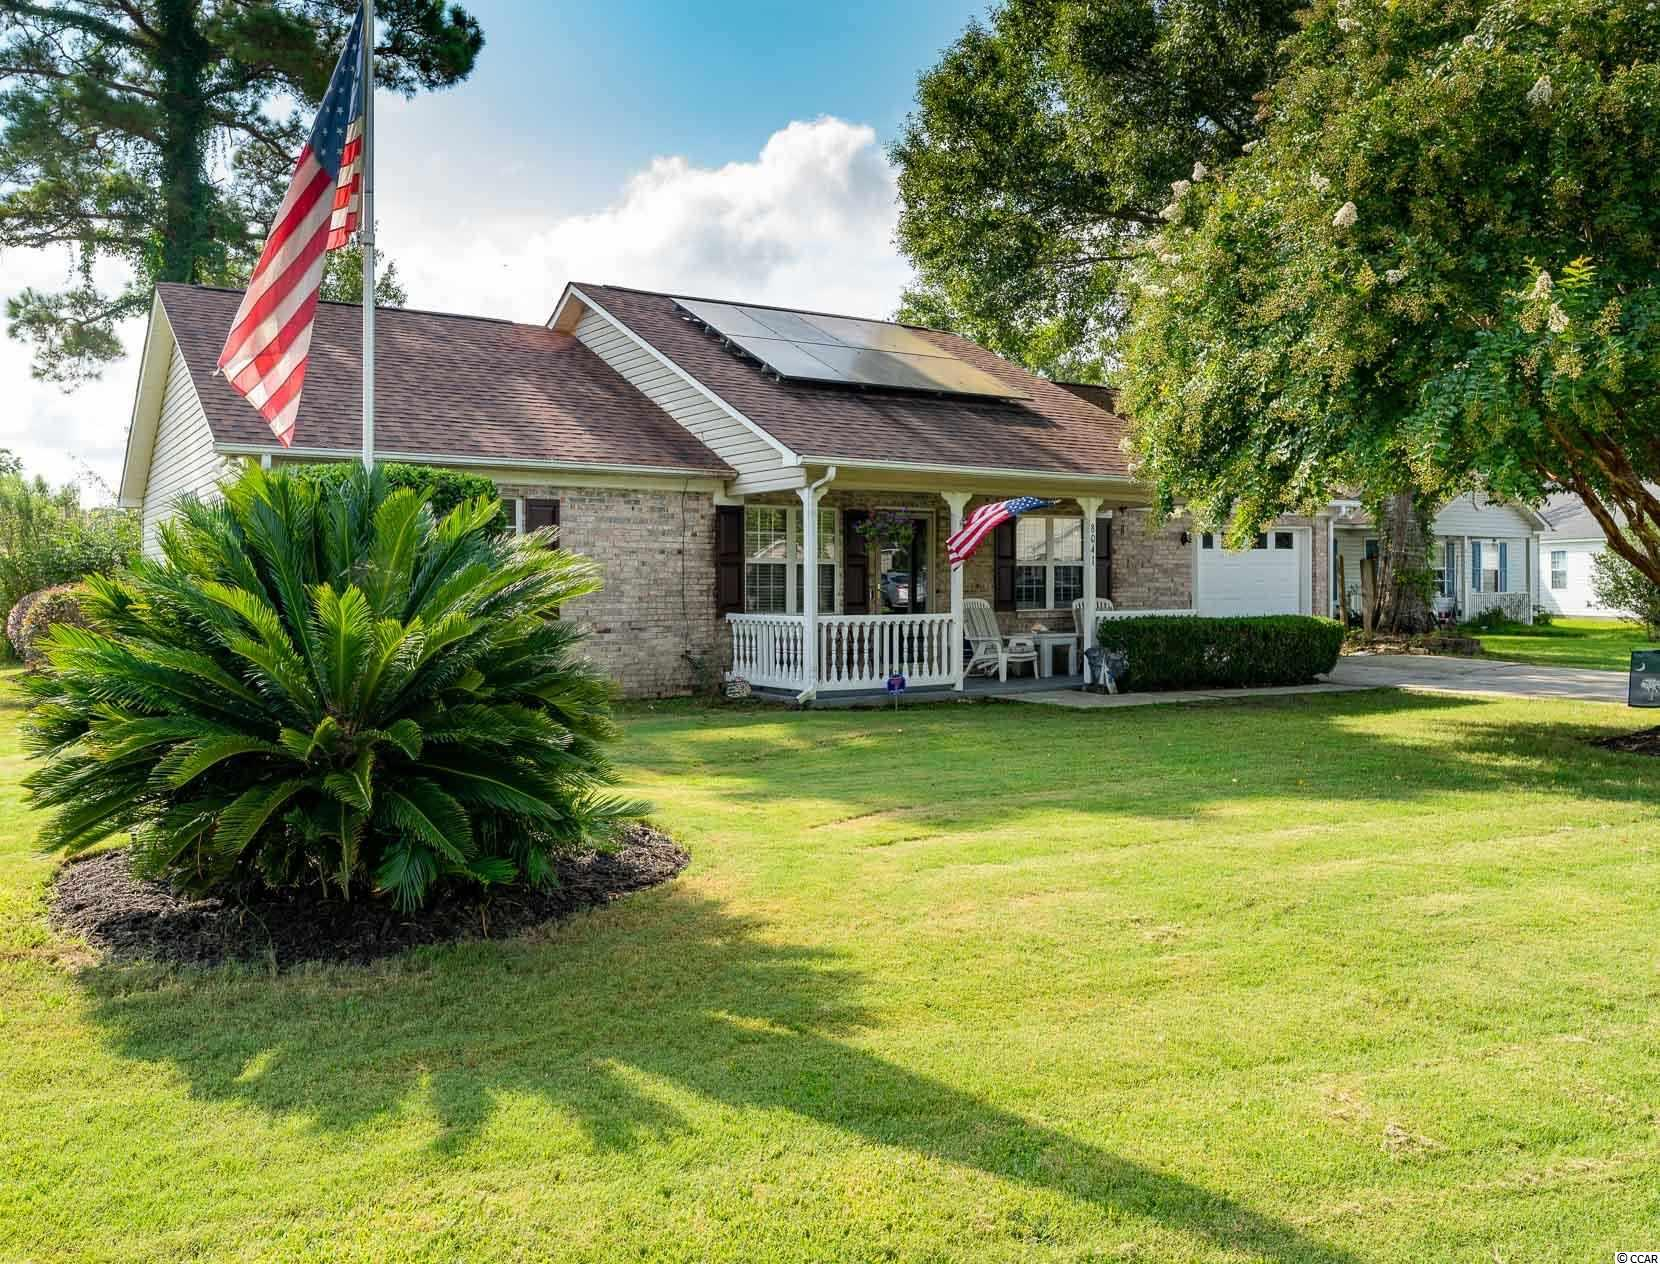 This Comfortable Ranch is Located In The Popular St. James School District. The Living Room Features Adjustable Lighting, Custom Built-In Entertainment Center & Is Wired for Surround Sound.  Behind The Garage & Through The Kitchen Is A Bonus Room That Could Be A 4th Bedroom.  The Master Bedroom Features A Retreat-Like Ensuite W/Double Sink, Spacious Jetted Tub & Step-In Shower.  At The Rear of The Home Is An Enclosed Rear Porch W/Heat & AC Unit, Which Leads To A Private Paver Patio Area. Also Included Is A Deep One Car Garage W/ Double Steel Insulated Door & Pull-Down Steps To Attic Storage. The Next Owner Will Experience Energy Efficiency & Significant Savings From The Investment Current Owner Made in 2017 By Installing A New Roof W/ Radiant Barrier, Thick Insulation & SOLAR PANELS THAT WILL TRANSFER FREE & CLEAR. This Home Is Truly GREEN & The Horry Electric Coop Credit Cuts The Electric Bill In Half!  Large Storage Shed Out Back.  Neighborhood is Close to Schools, Shopping, Hospital, Doctors Offices and is a Short Distance from the Beach and the Marsh Walk in Murrells Inlet.  Sq. Footage Approximate.